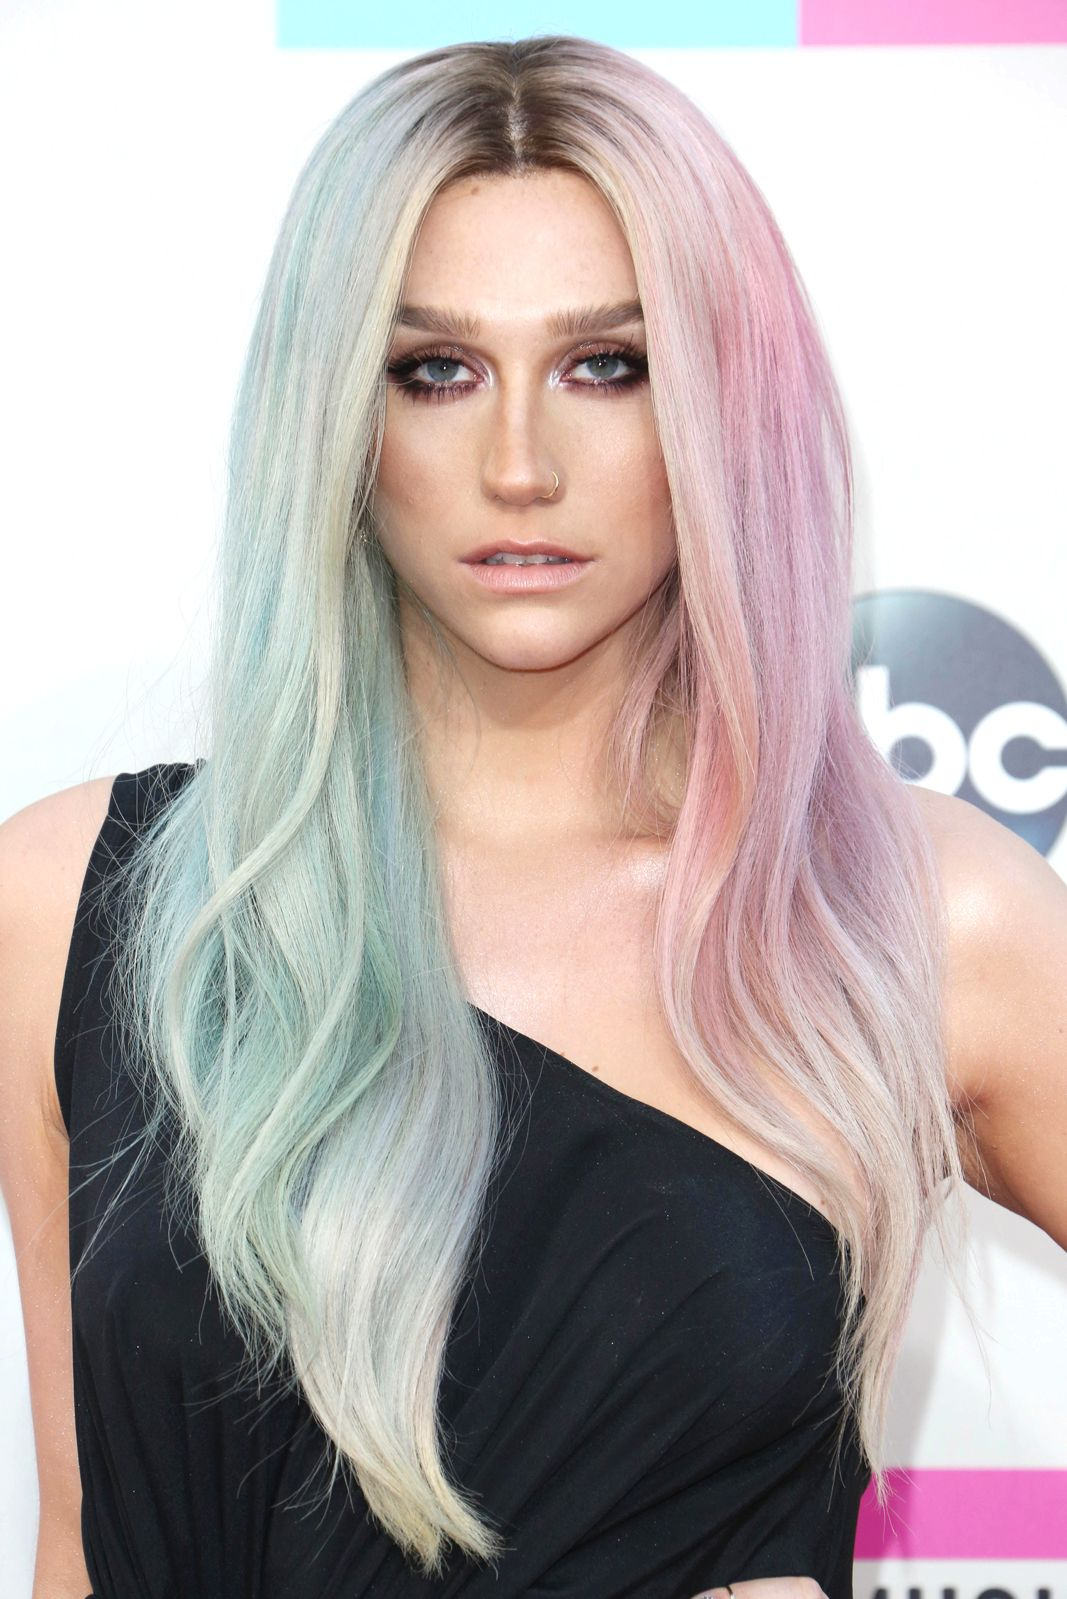 Pastel Hair The Newest Hair Trend Hairstyles For Women